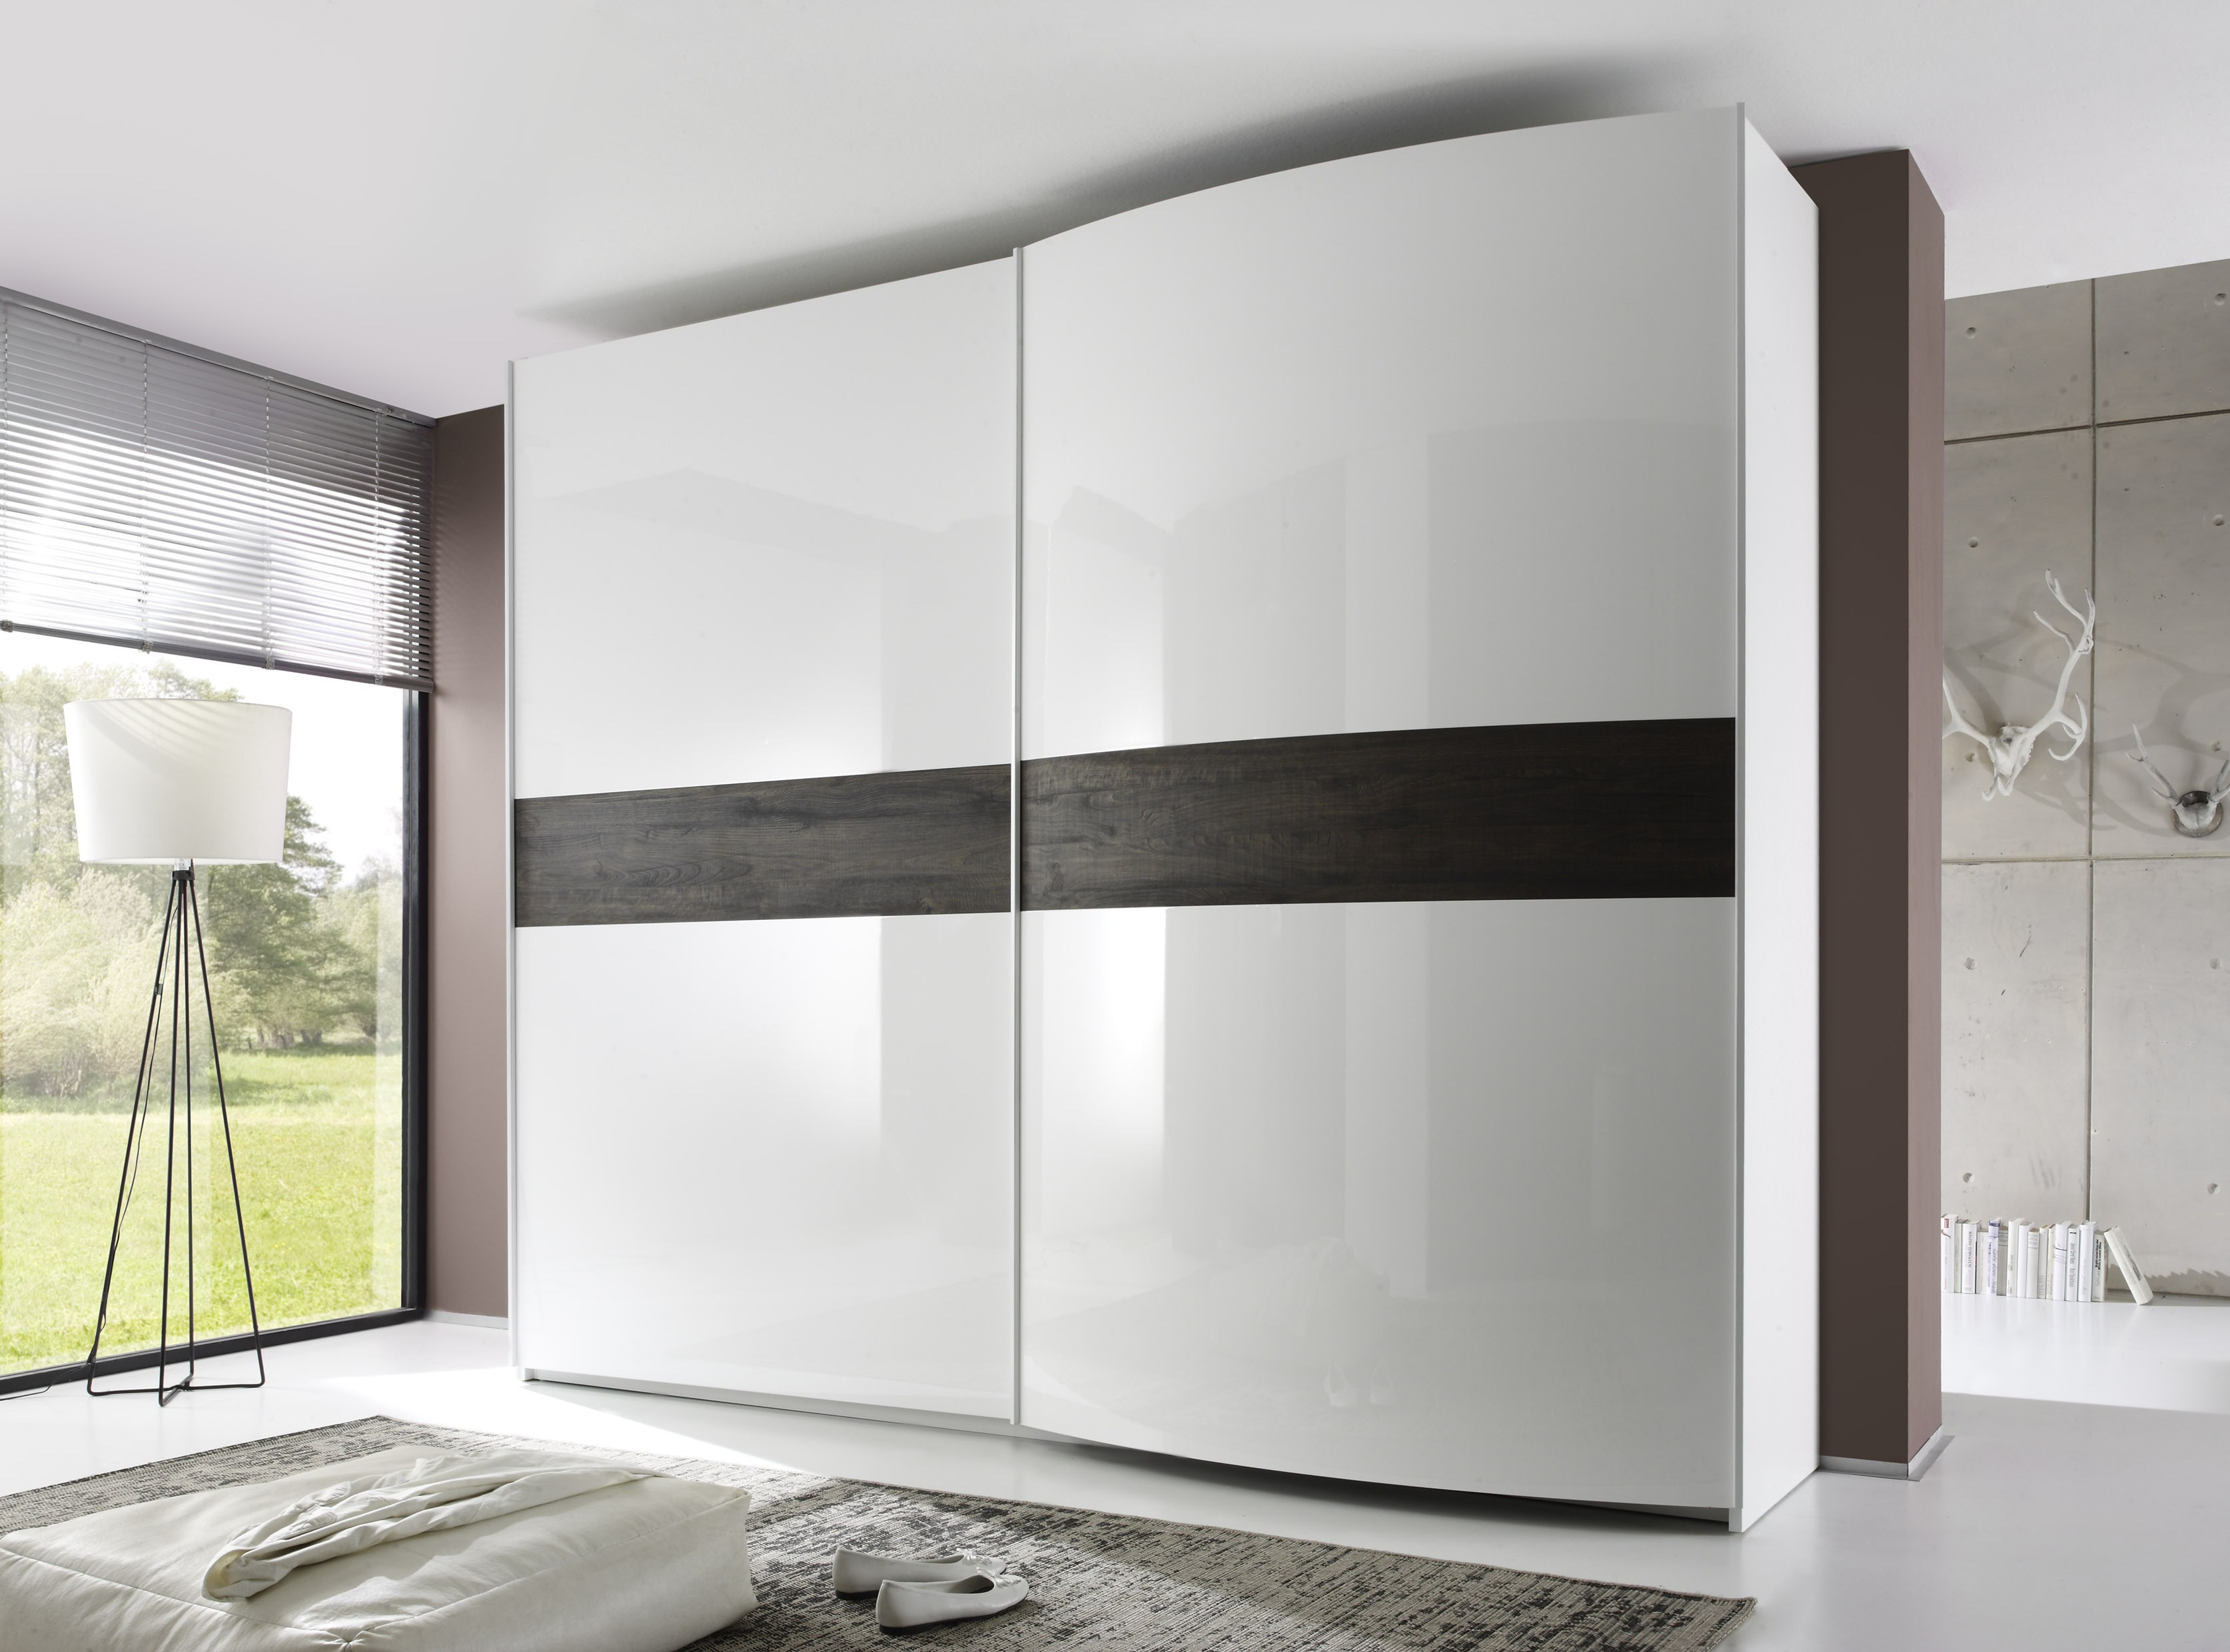 Tambura Curved Sliding Doors Wardrobe White Wenge Inserts Buy Within Cupboard Sliding Doors (View 24 of 25)